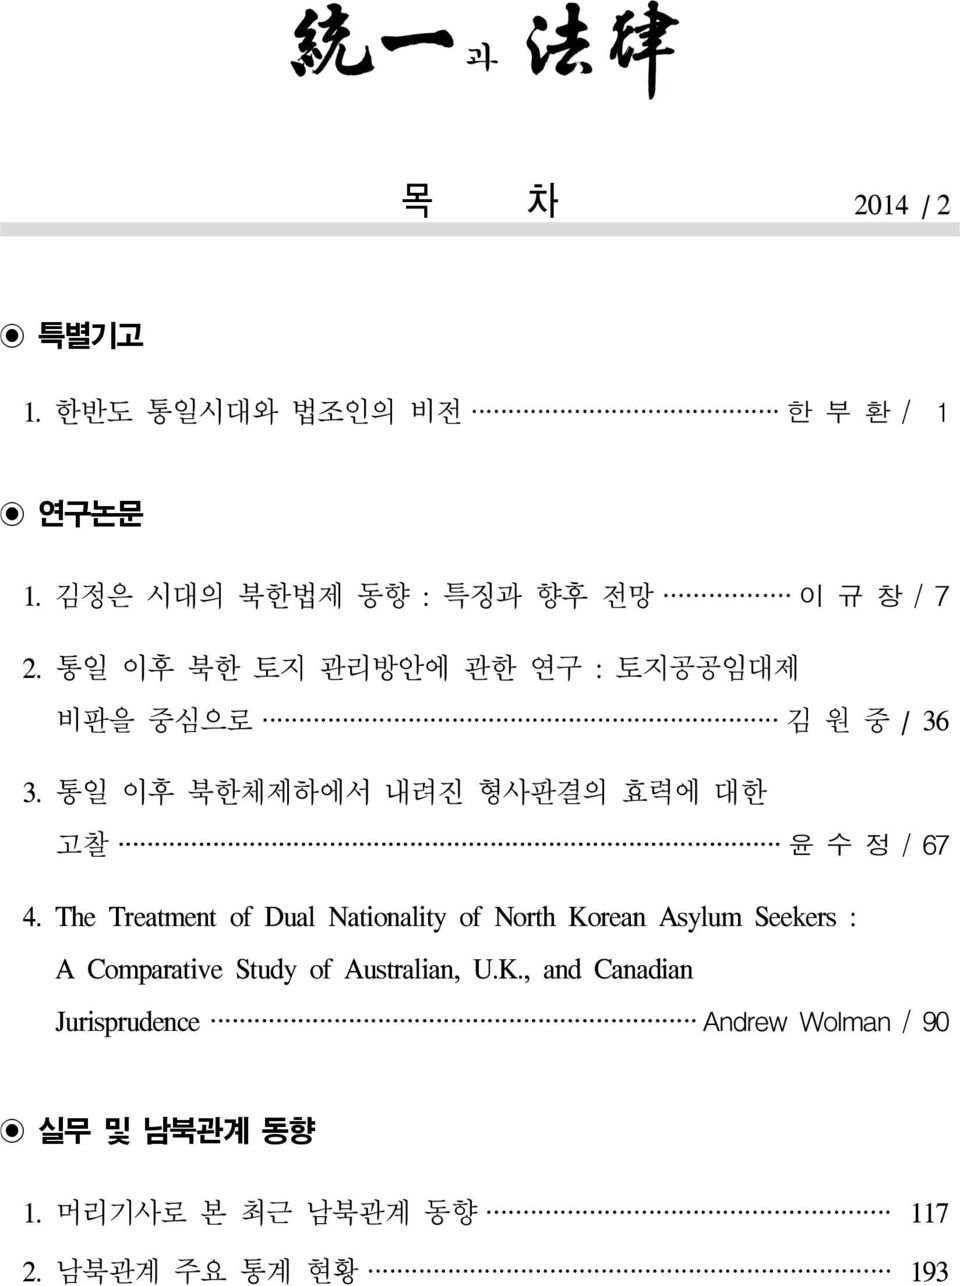 The Treatment of Dual Nationality of North Korean Asylum Seekers : A Comparative Study of Australian, U.